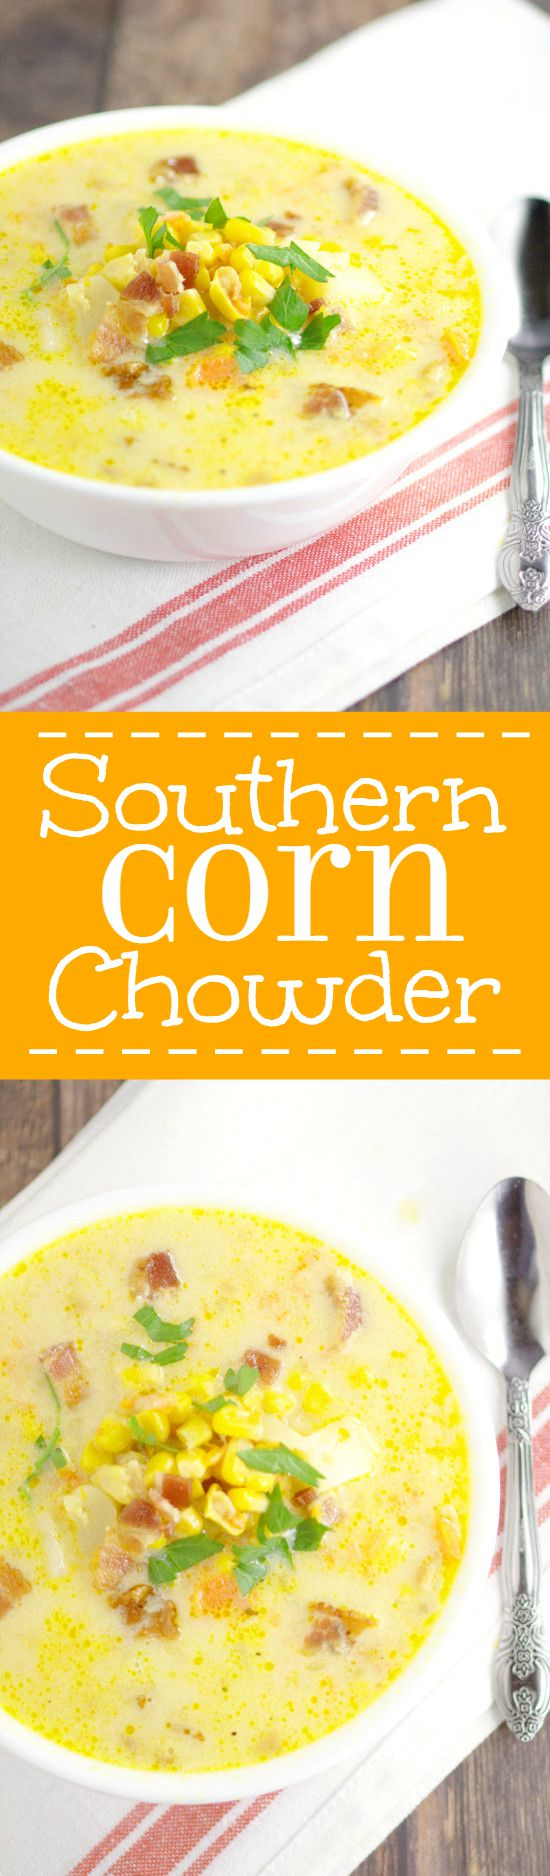 Hearty, cozy, creamy soup recipe,Southern Corn Chowder with potato, bacon, cheese, vegetables, and of course, lots of corn, will warm you up on those chilly days. Fresh, frozen, or canned corn all work for this delightful warm soup recipe. Serve with warm, buttery, crusty bread.